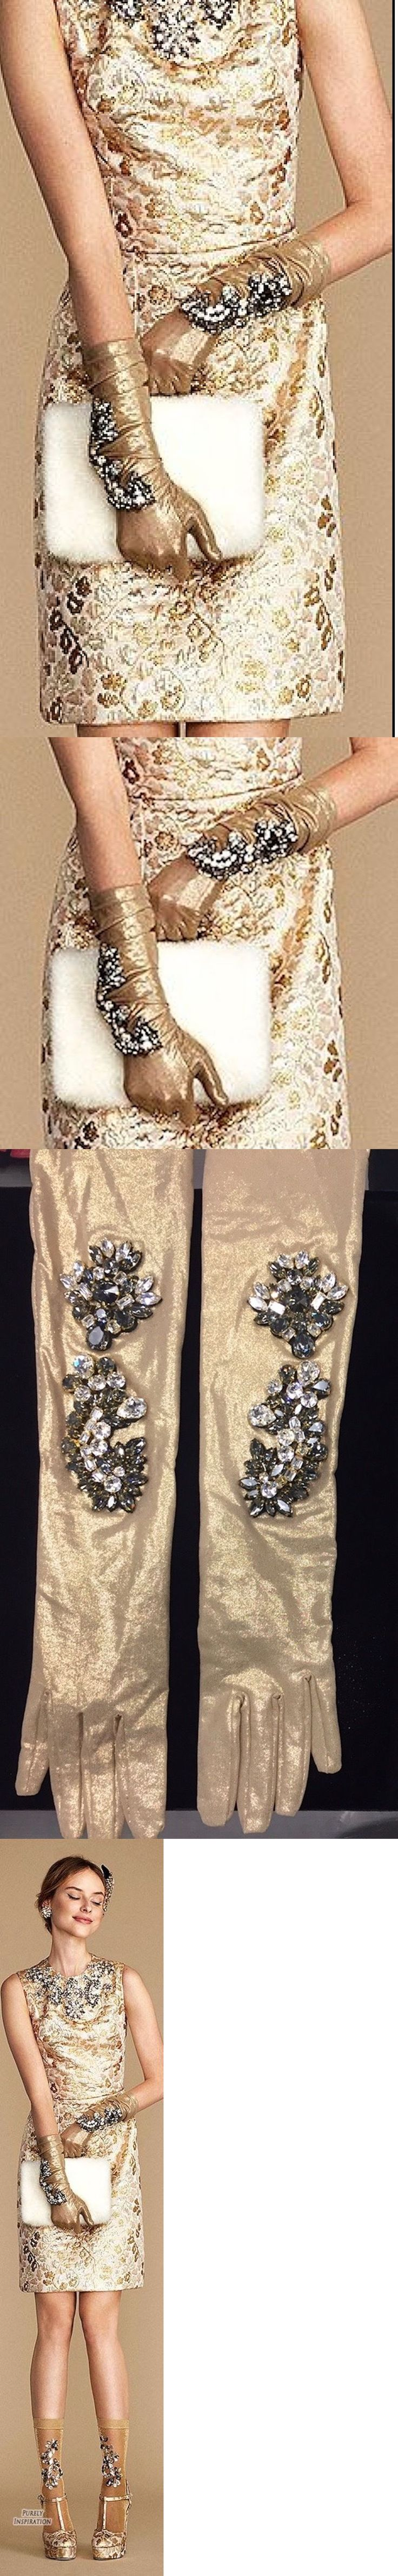 Gloves 65974: Nwt Dolceandgabbana Gold Crystal Embellished Gloves Size 6 -> BUY IT NOW ONLY: $2499 on eBay!